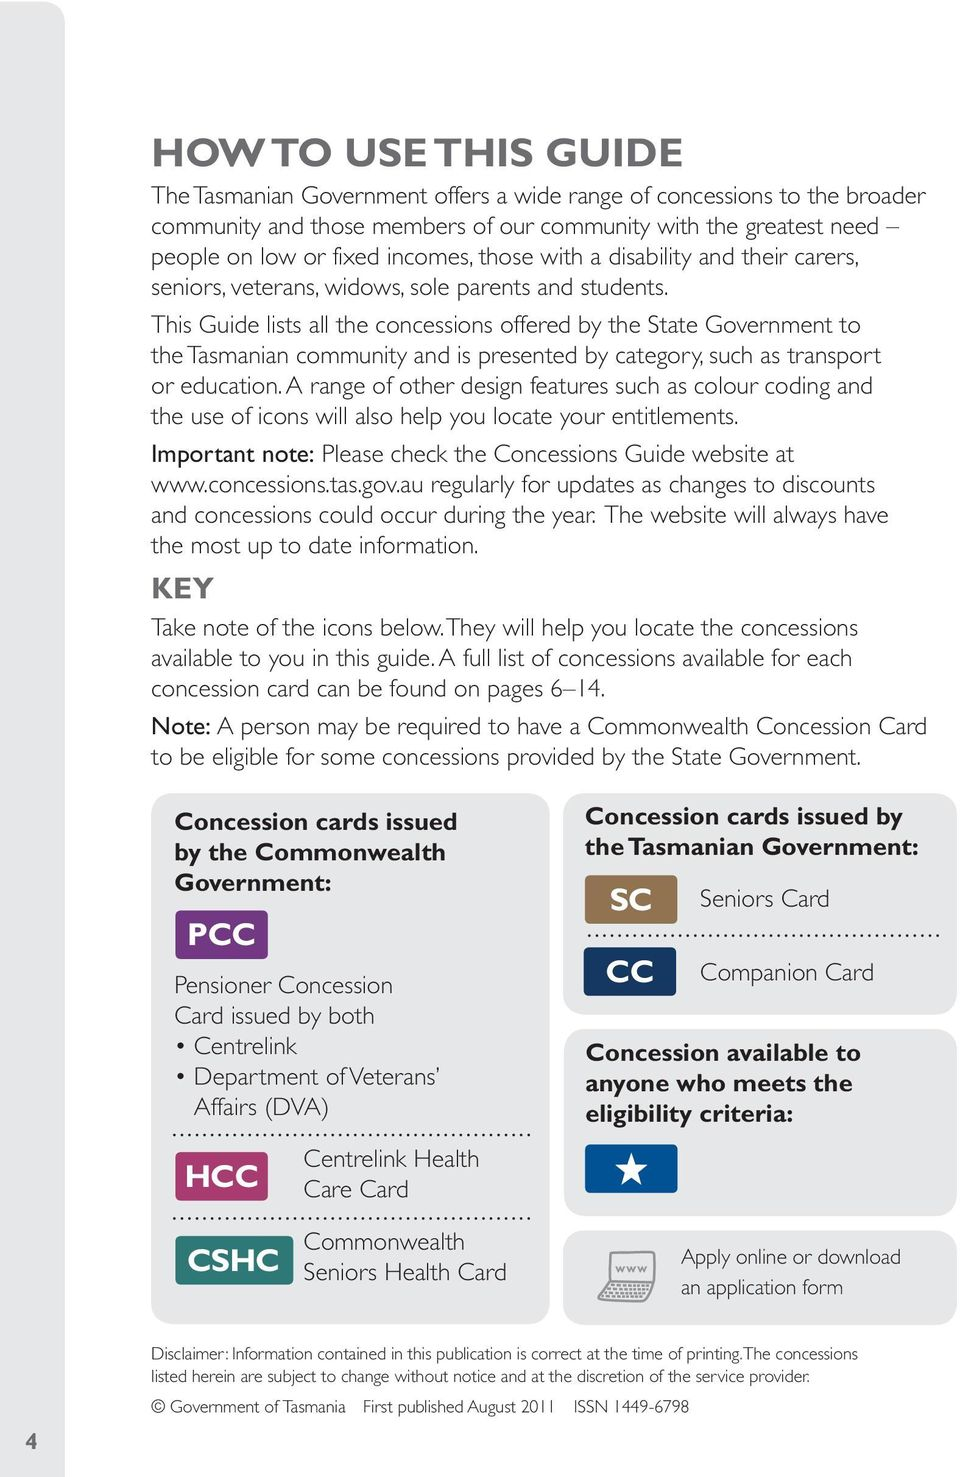 This Guide lists all the concessions offered by the State Government to the Tasmanian community and is presented by category, such as transport or education.